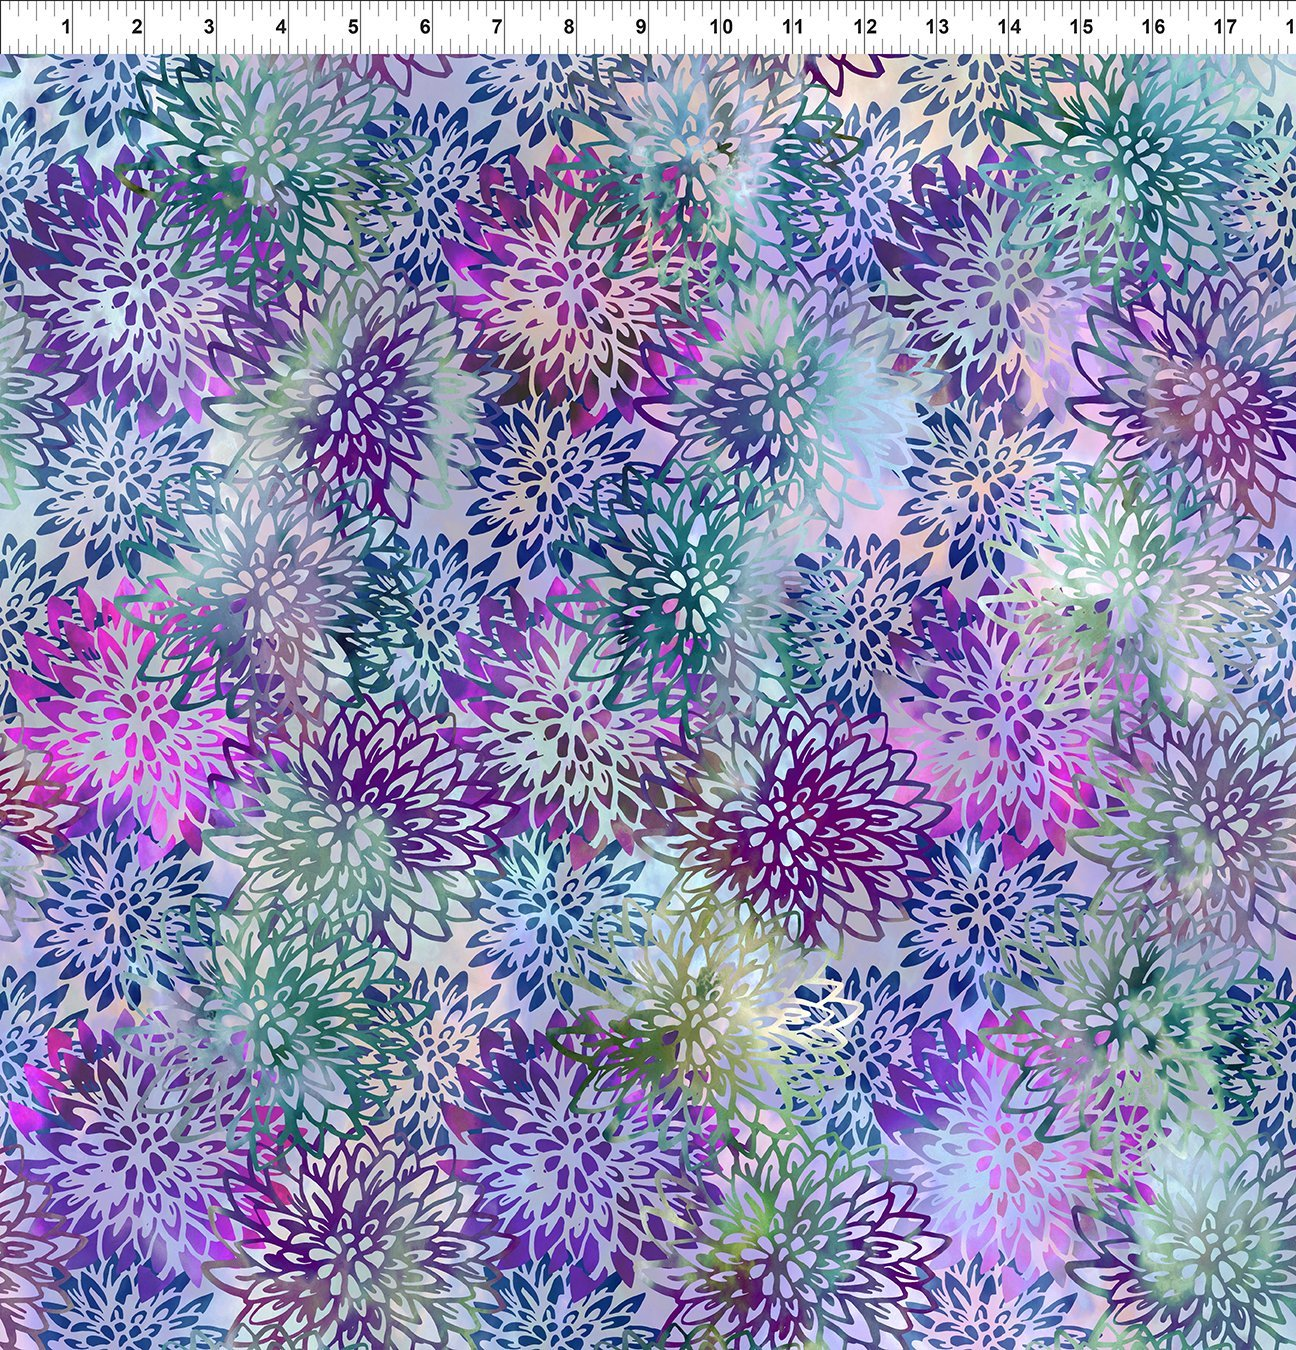 5HVN-3 Haven - Chrysanthemums - Purple by Jason Yenter for In The Beginning Fabric